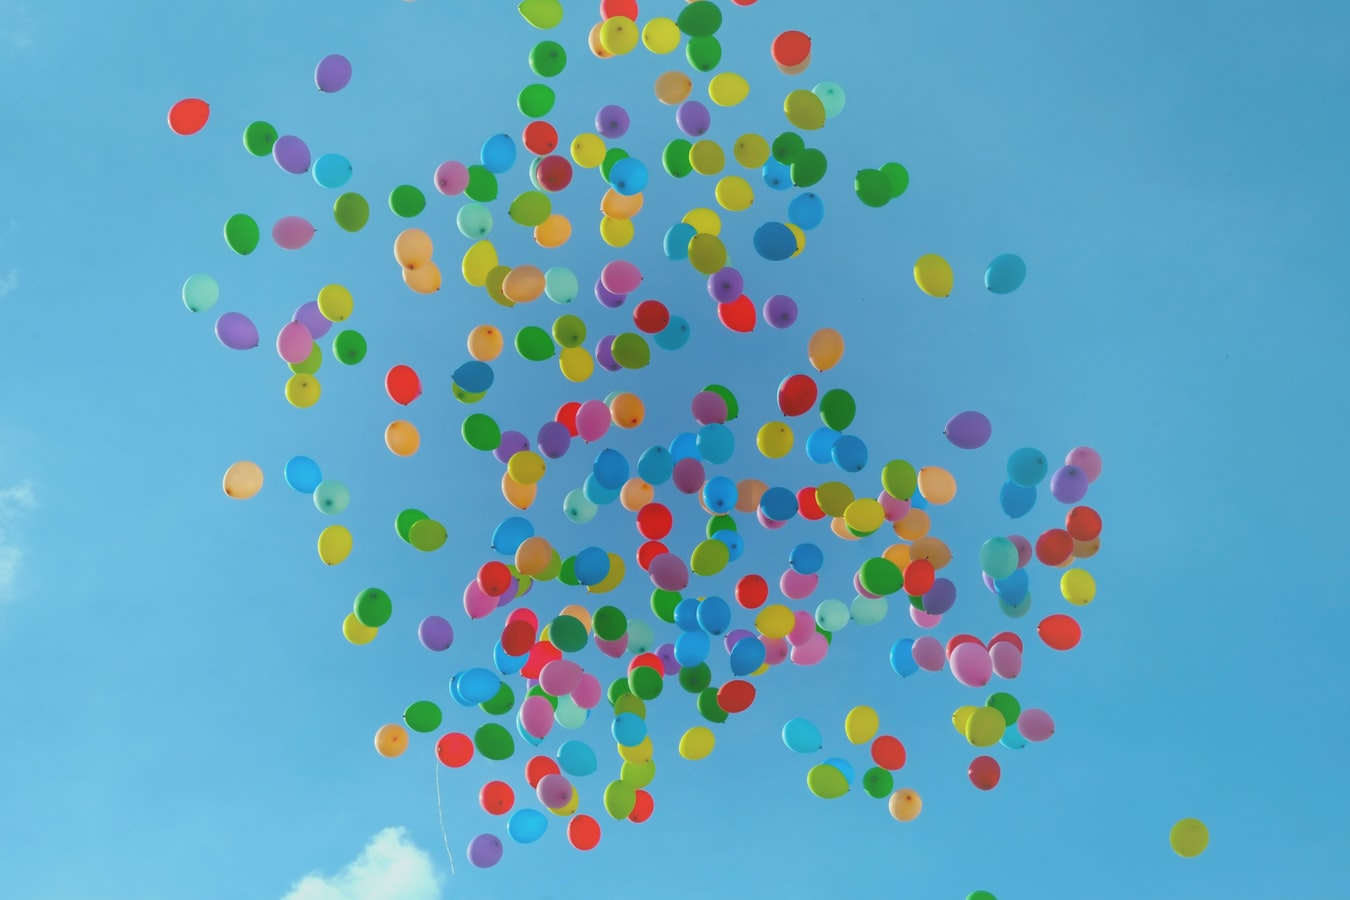 You can find some happy balloon images on Unsplash, like the one inserted below.